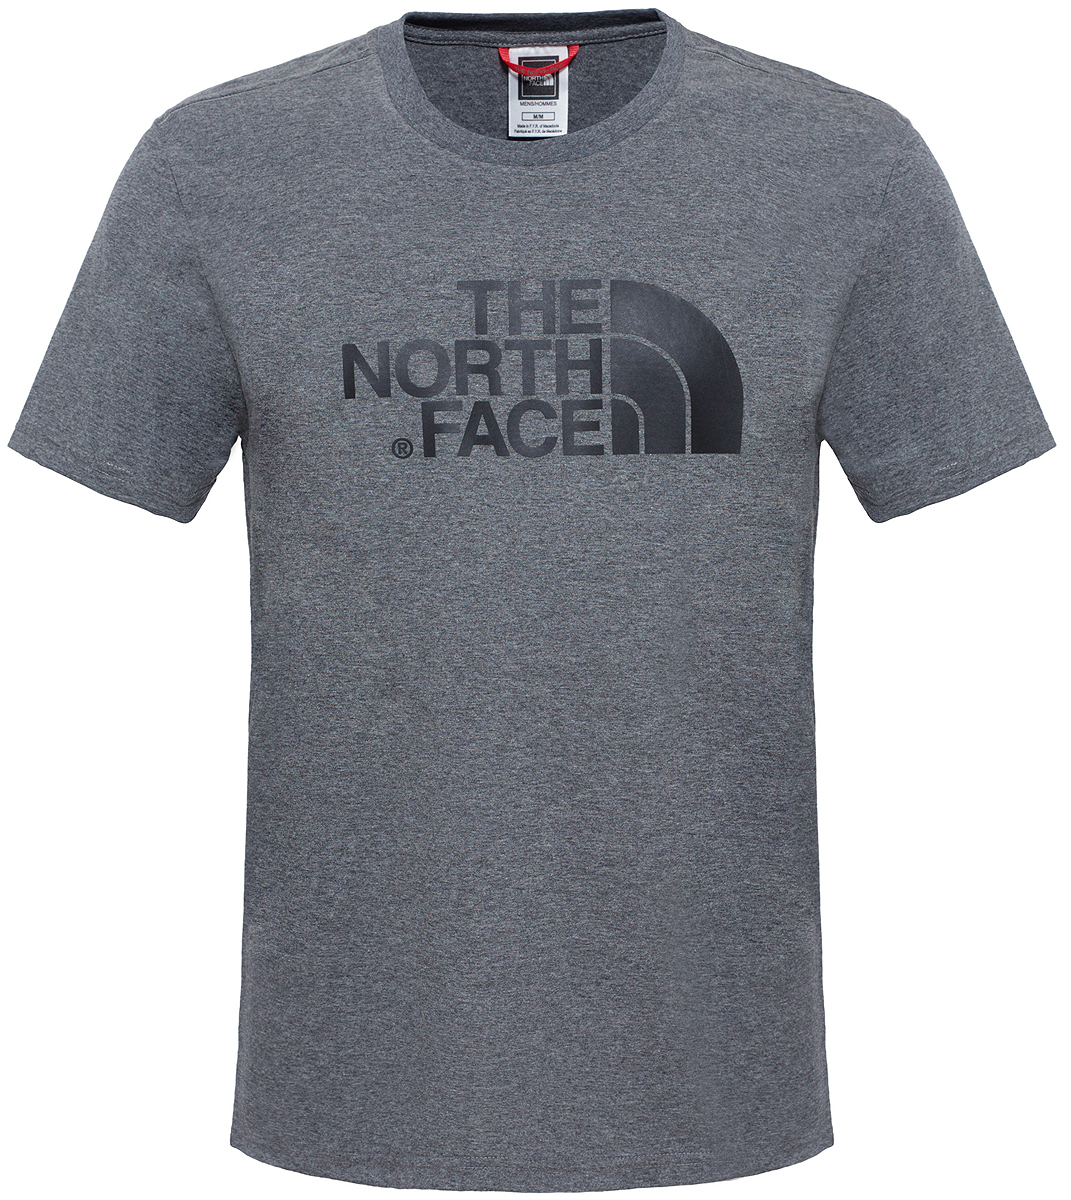 Футболка The North Face футболка женская the north face w s s simple dom tee цвет бирюзовый t0a3h6zcv размер xs 40